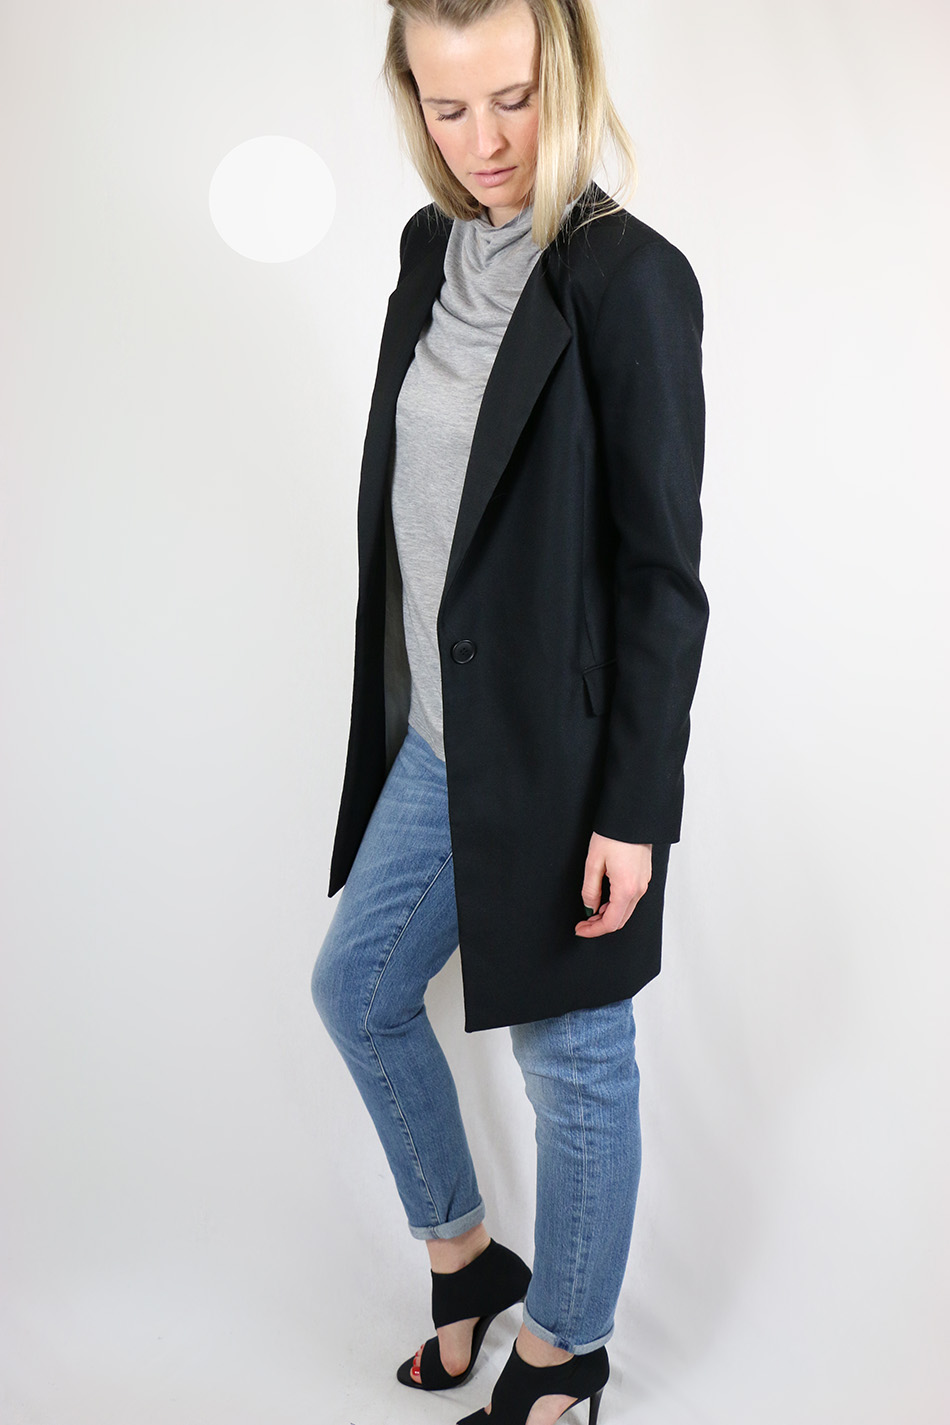 Fringe and Doll BMB Blazer and jeans IMG_1581edit